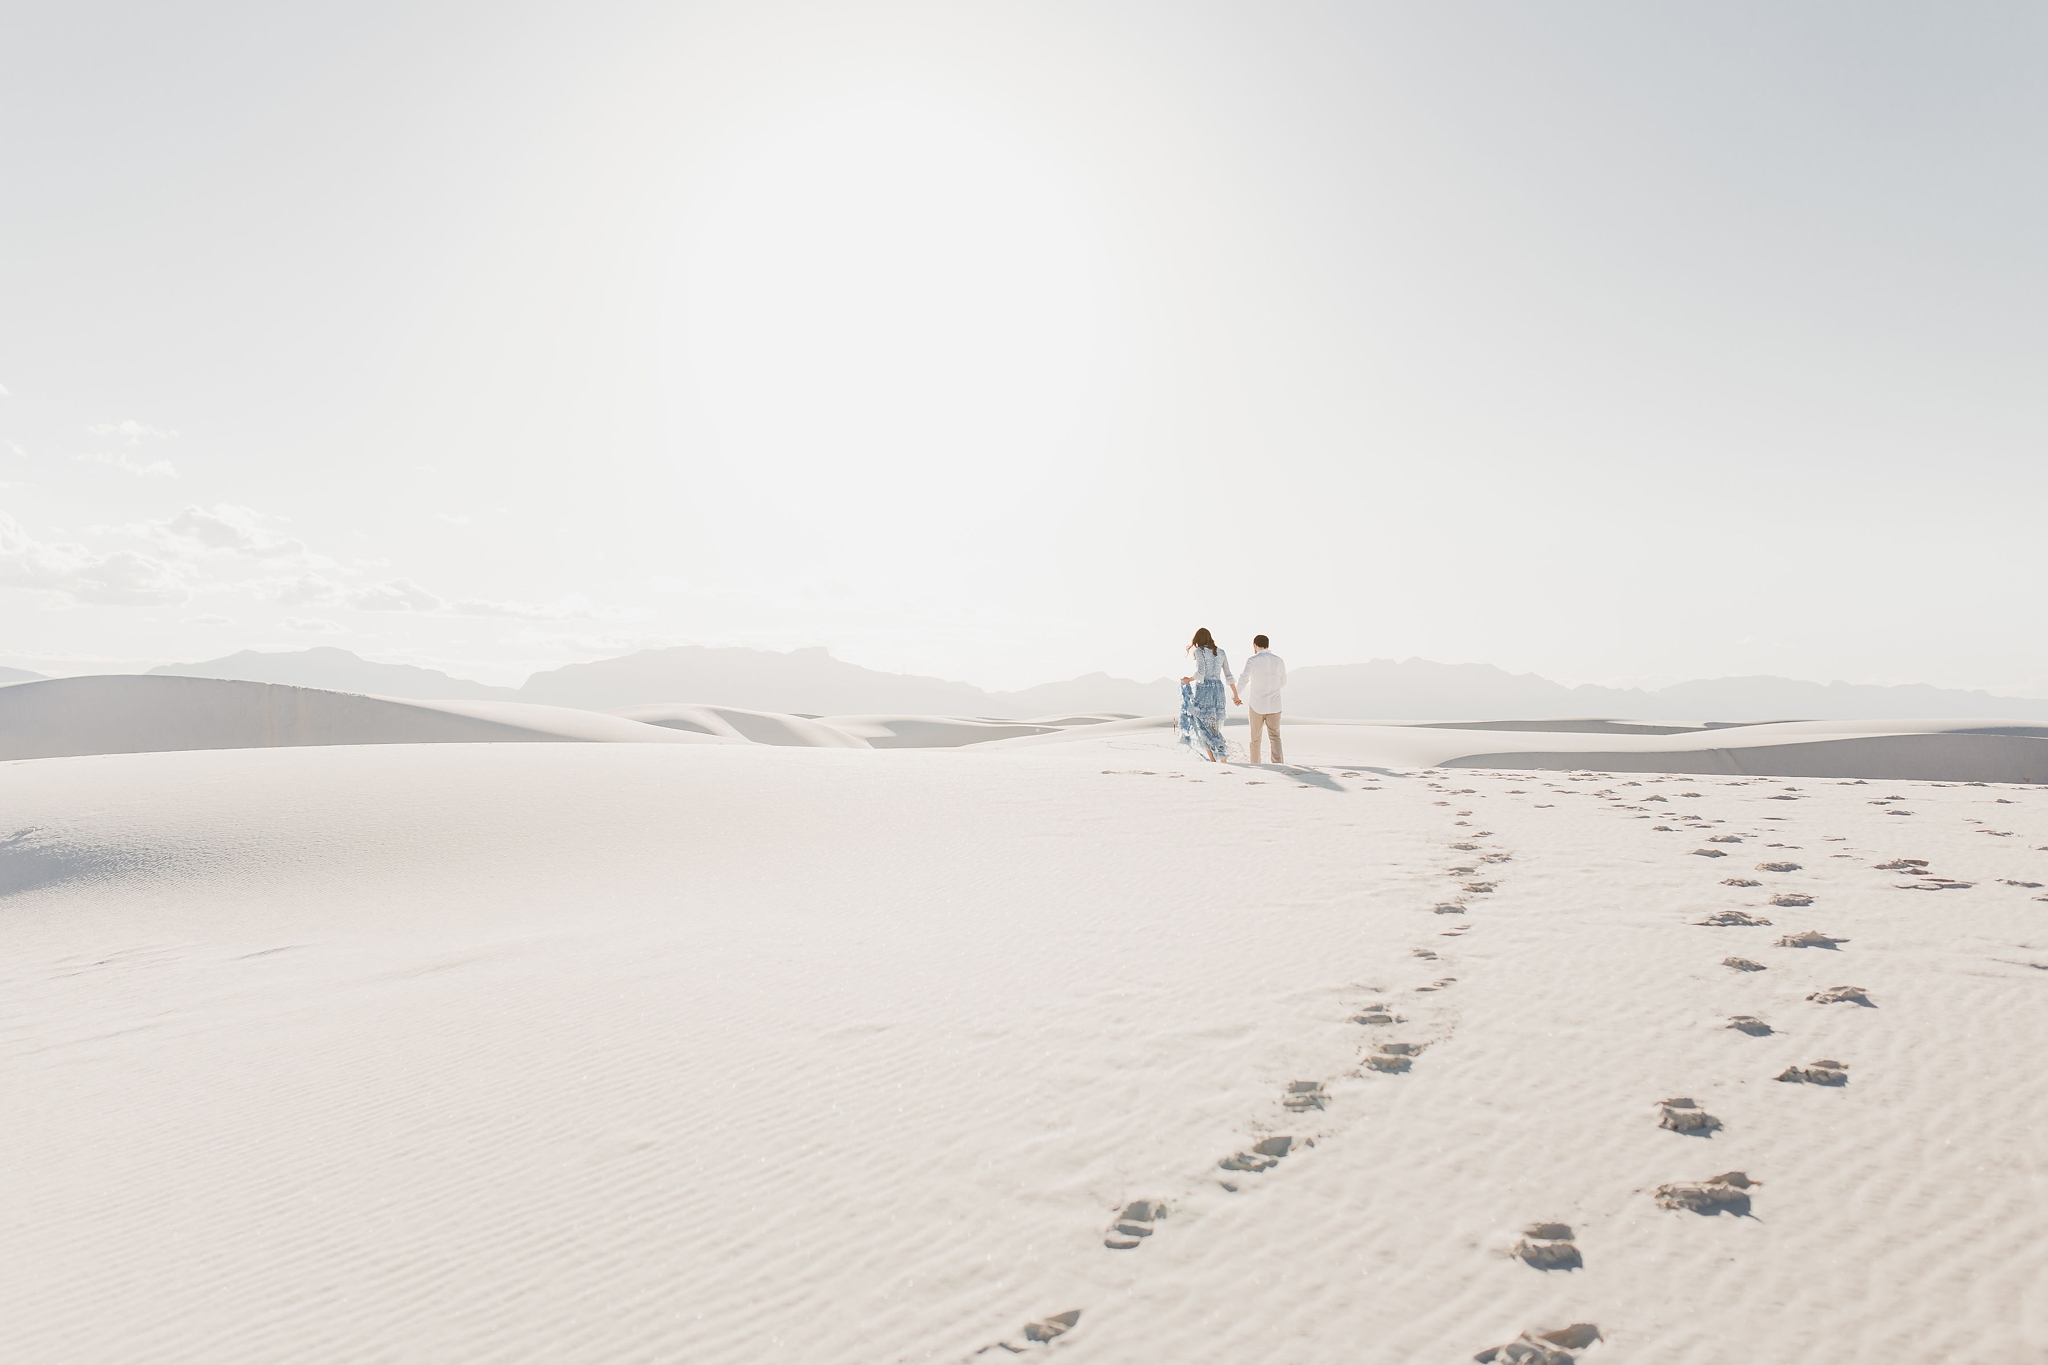 Alicia+lucia+photography+-+albuquerque+wedding+photographer+-+santa+fe+wedding+photography+-+new+mexico+wedding+photographer+-+new+mexico+wedding+-+new+mexico+engagement+-+white+sands+engagement+-+white+sands+national+monument_0015.jpg